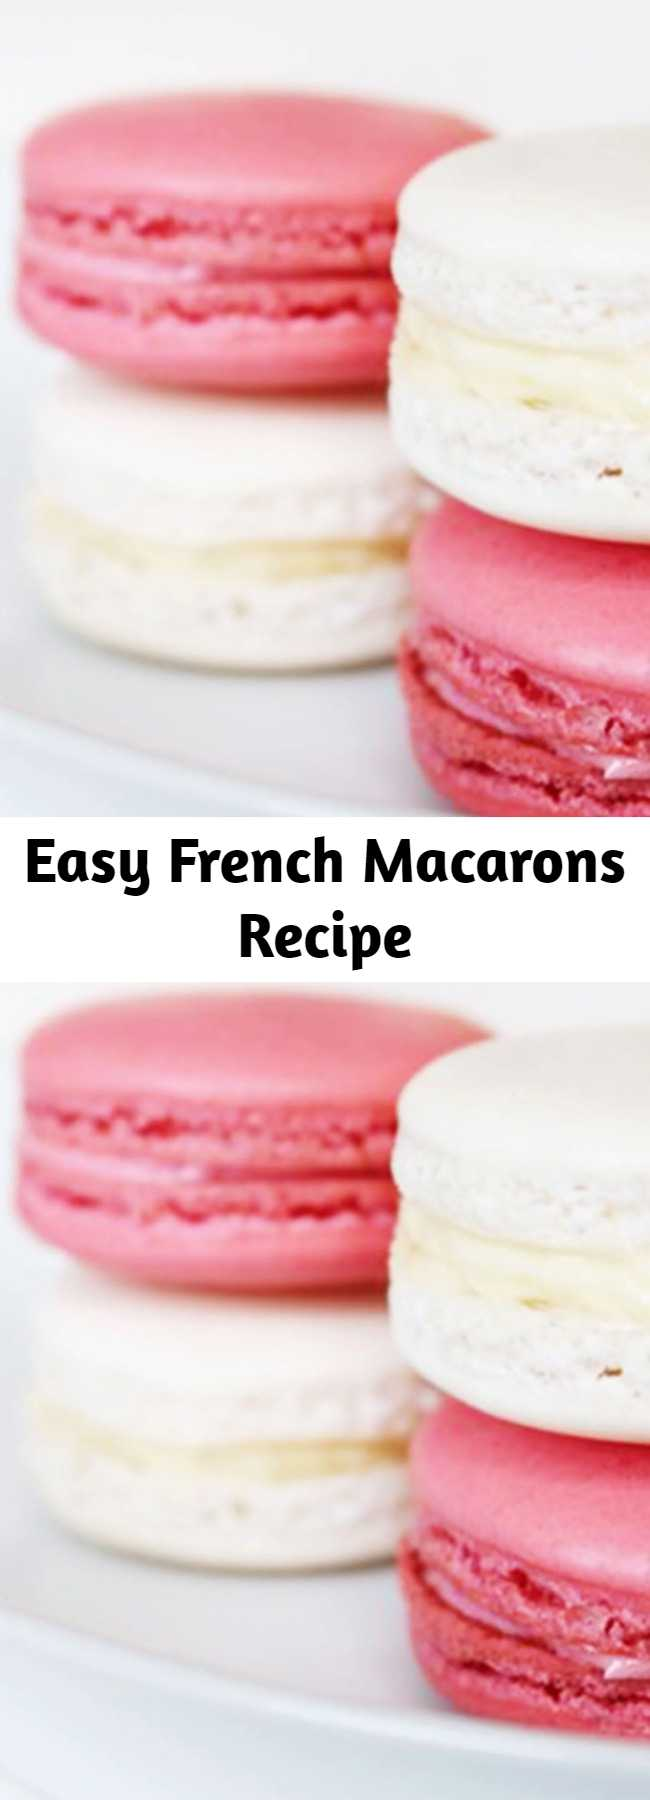 Easy French Macarons Recipe - These charming little cookies have become a total dessert craze thanks to our French friends across the pond. Macarons are a sugary and delicious treat perfect for tea parties, bridal showers, and basically any festive occasion you can think of. Don't be intimidated by their seemingly difficult recipe requirements, because our guide to baking and assembling the basic French macaron is fool proof!